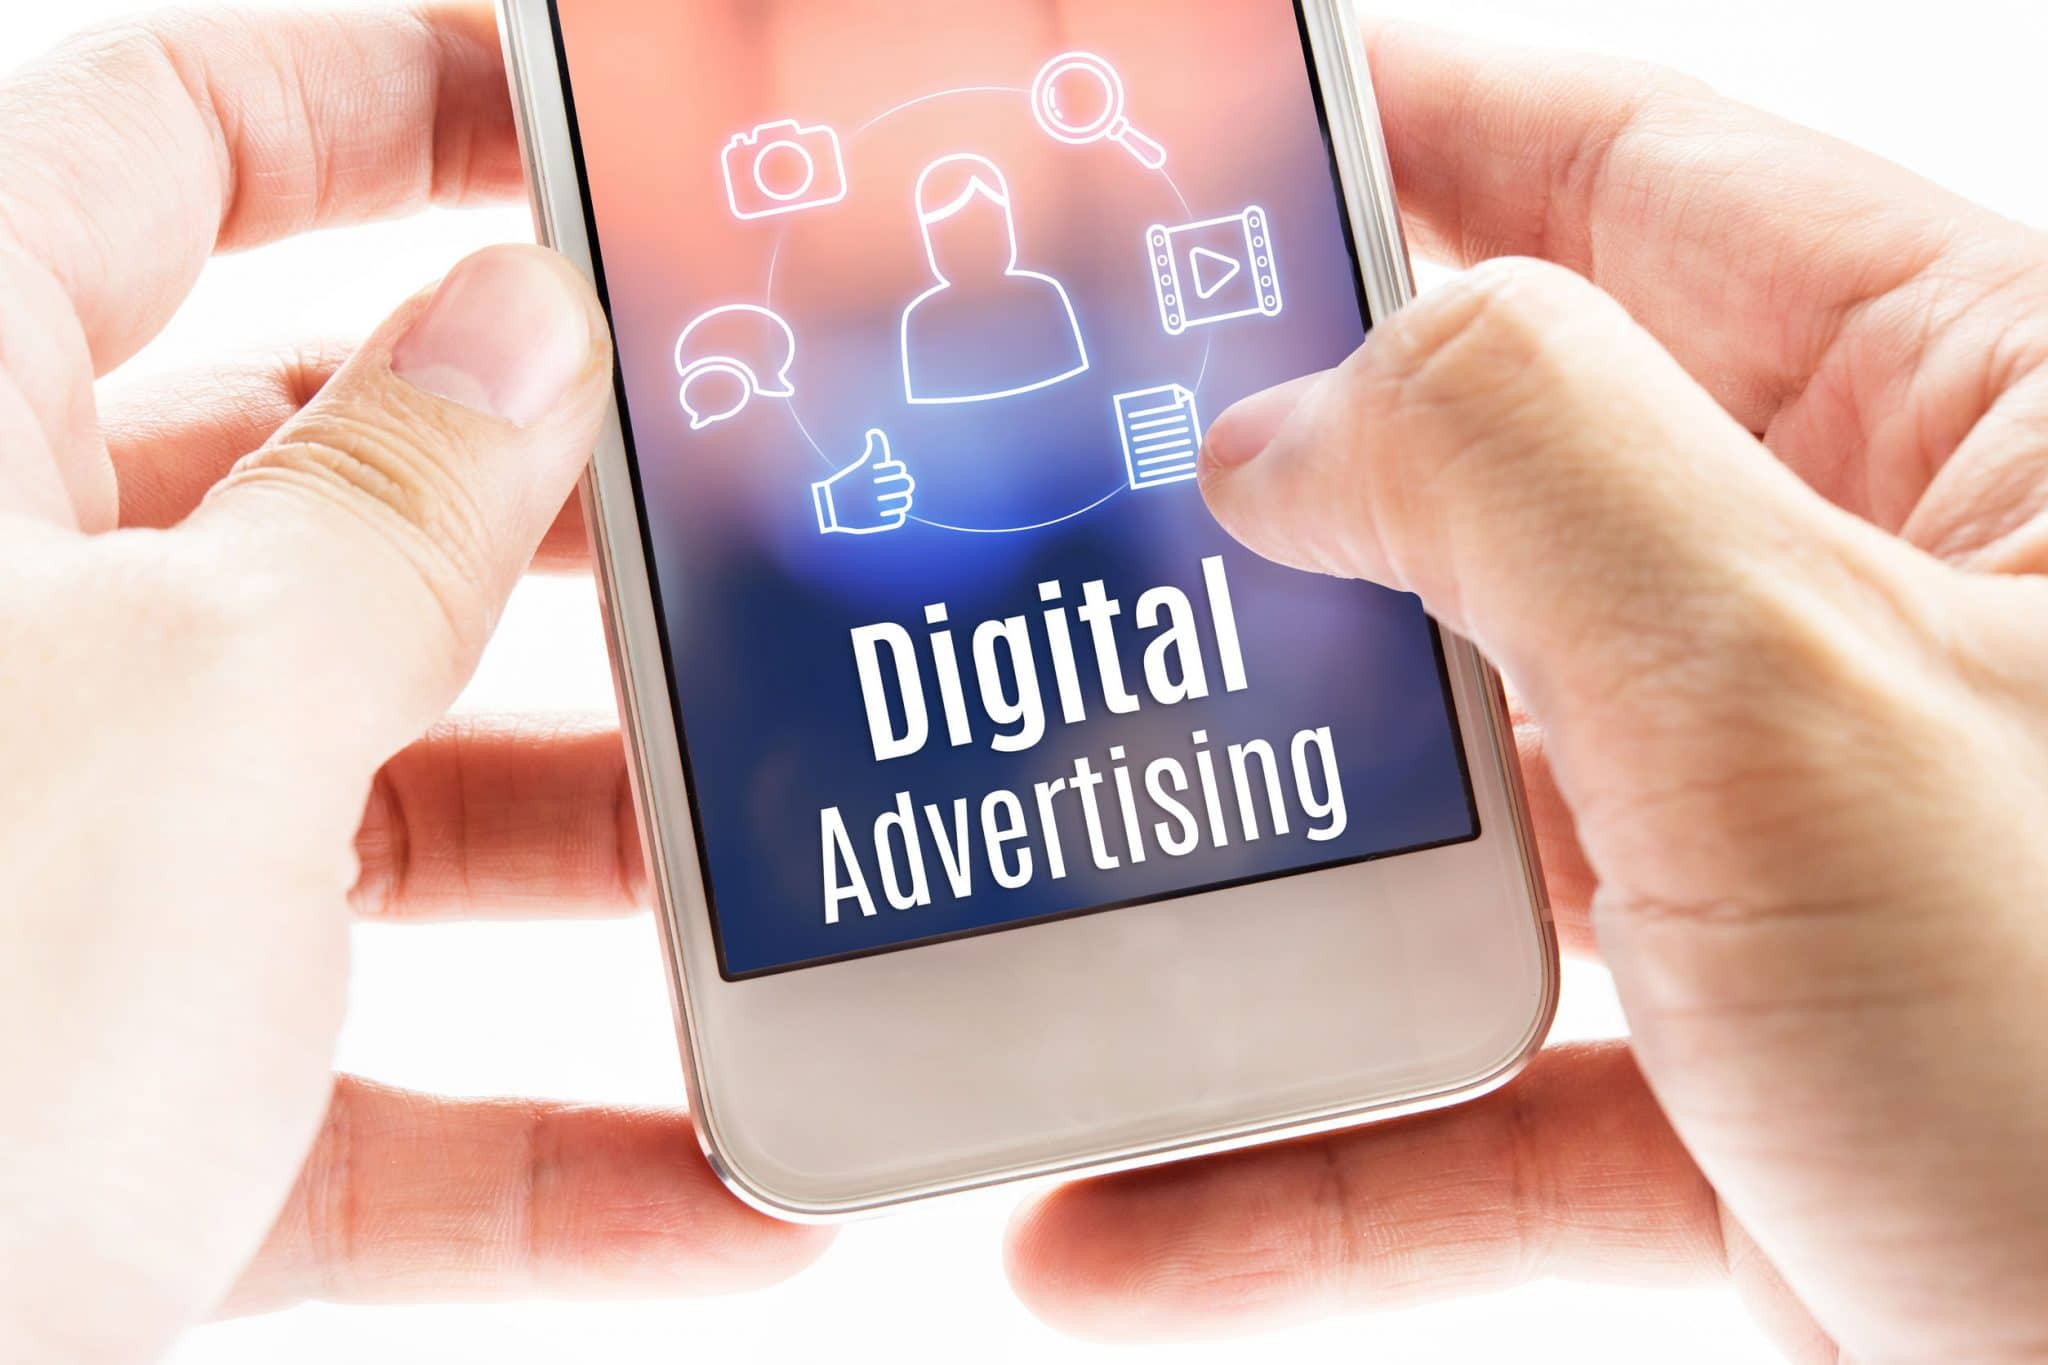 Invest in Advertising - Tips to Increase Website Traffic